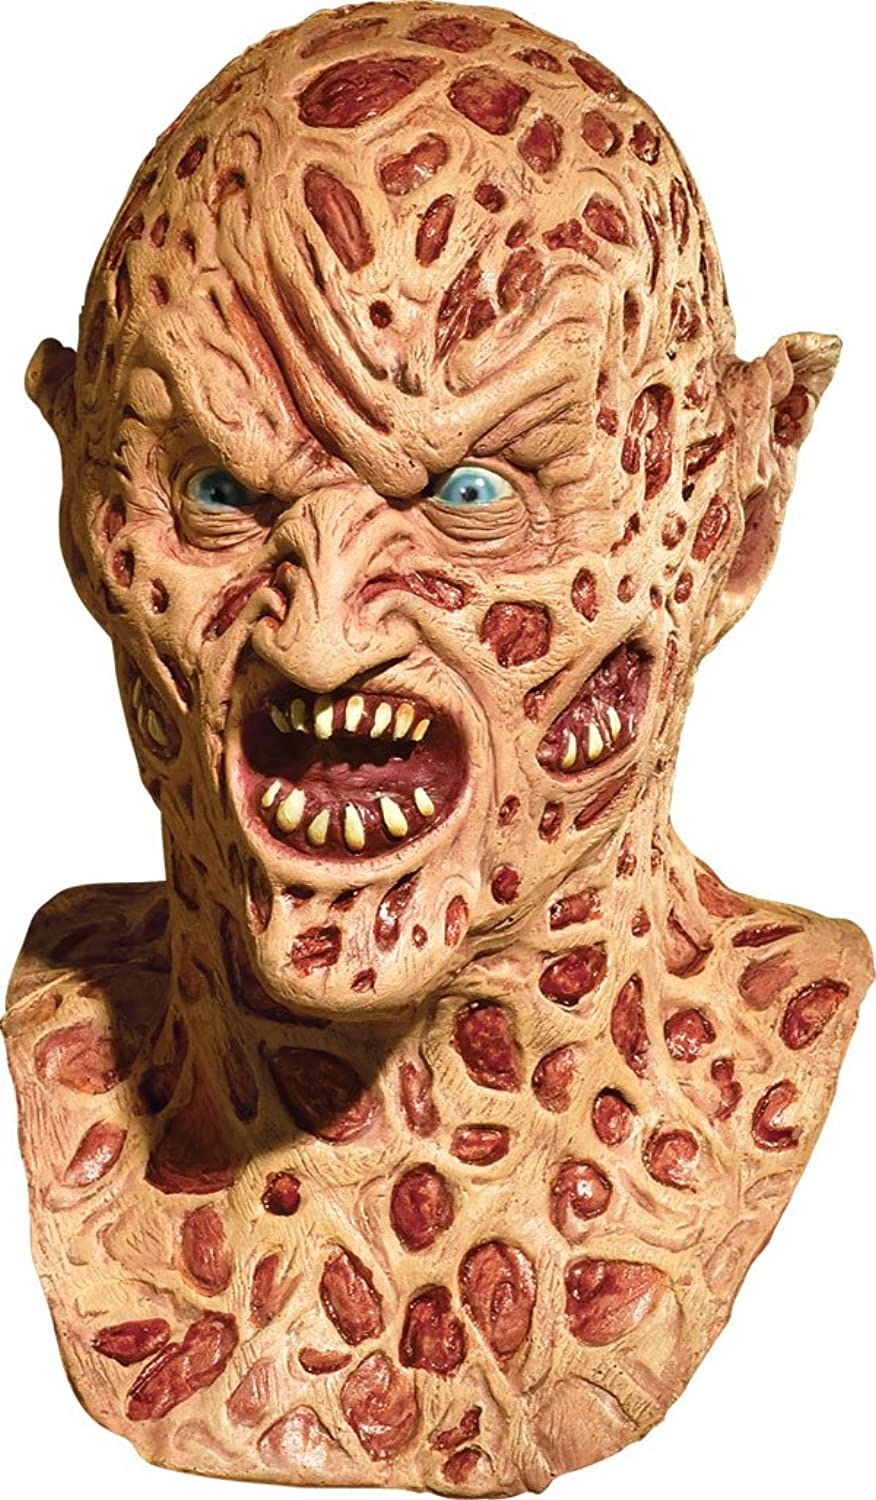 Amazon.com: Rubie's Costume Nightmare On Elm Street Deluxe ...